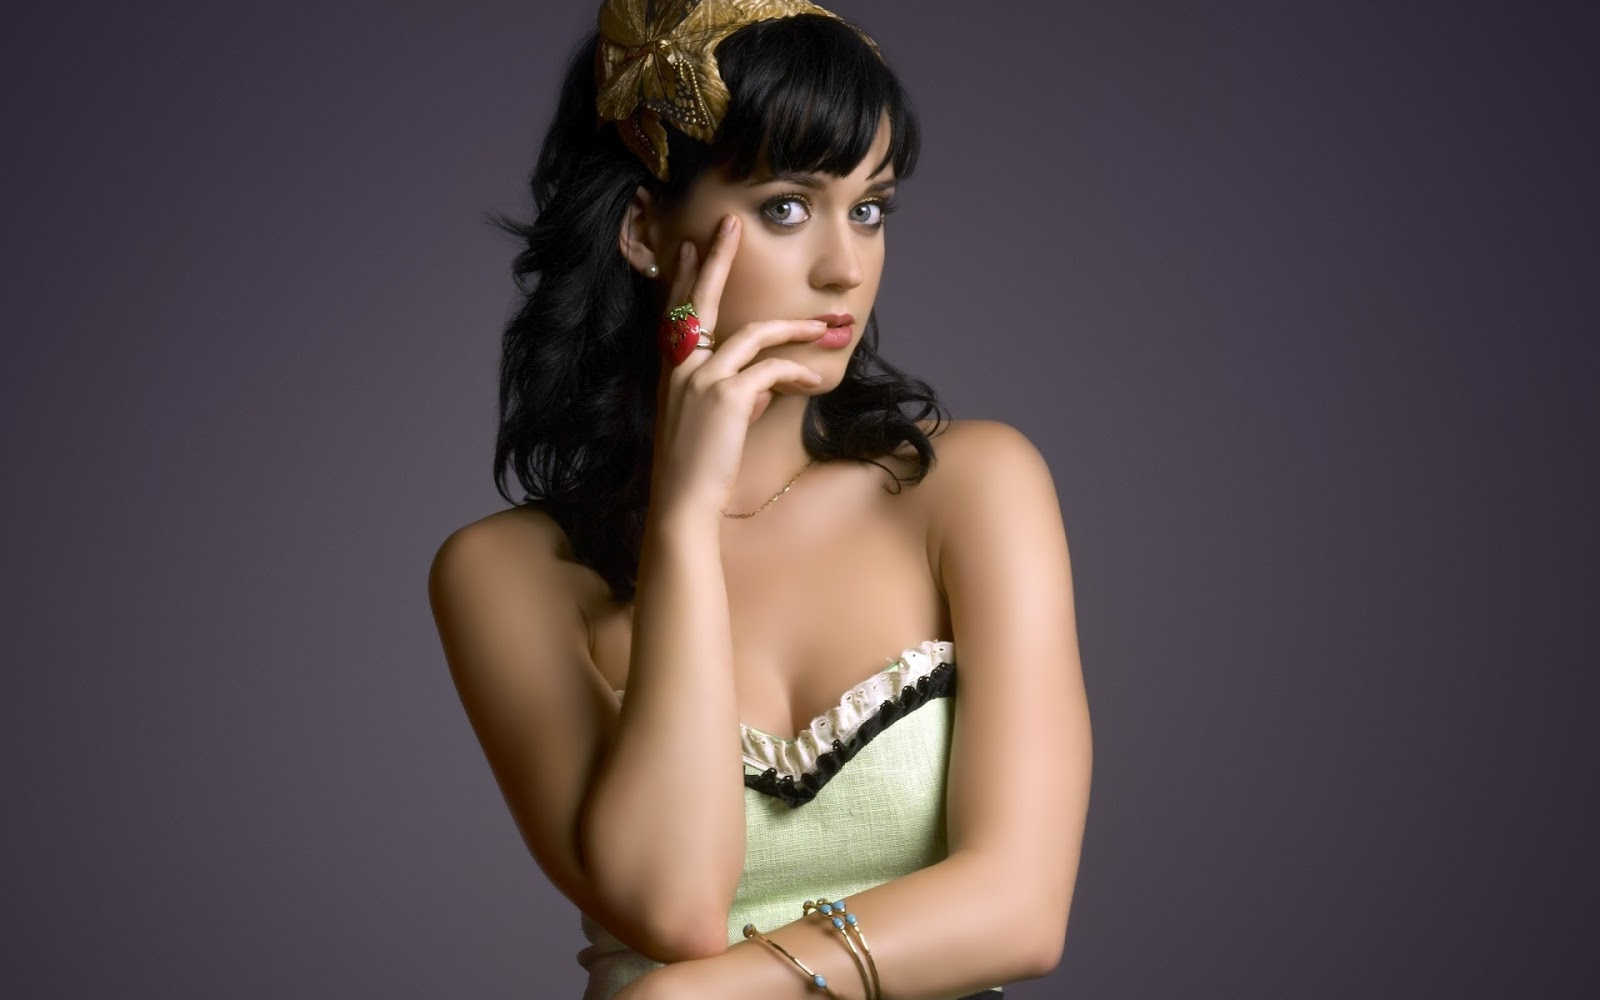 High Resolution Wallpaper: Katy Perry HD Wallpapers